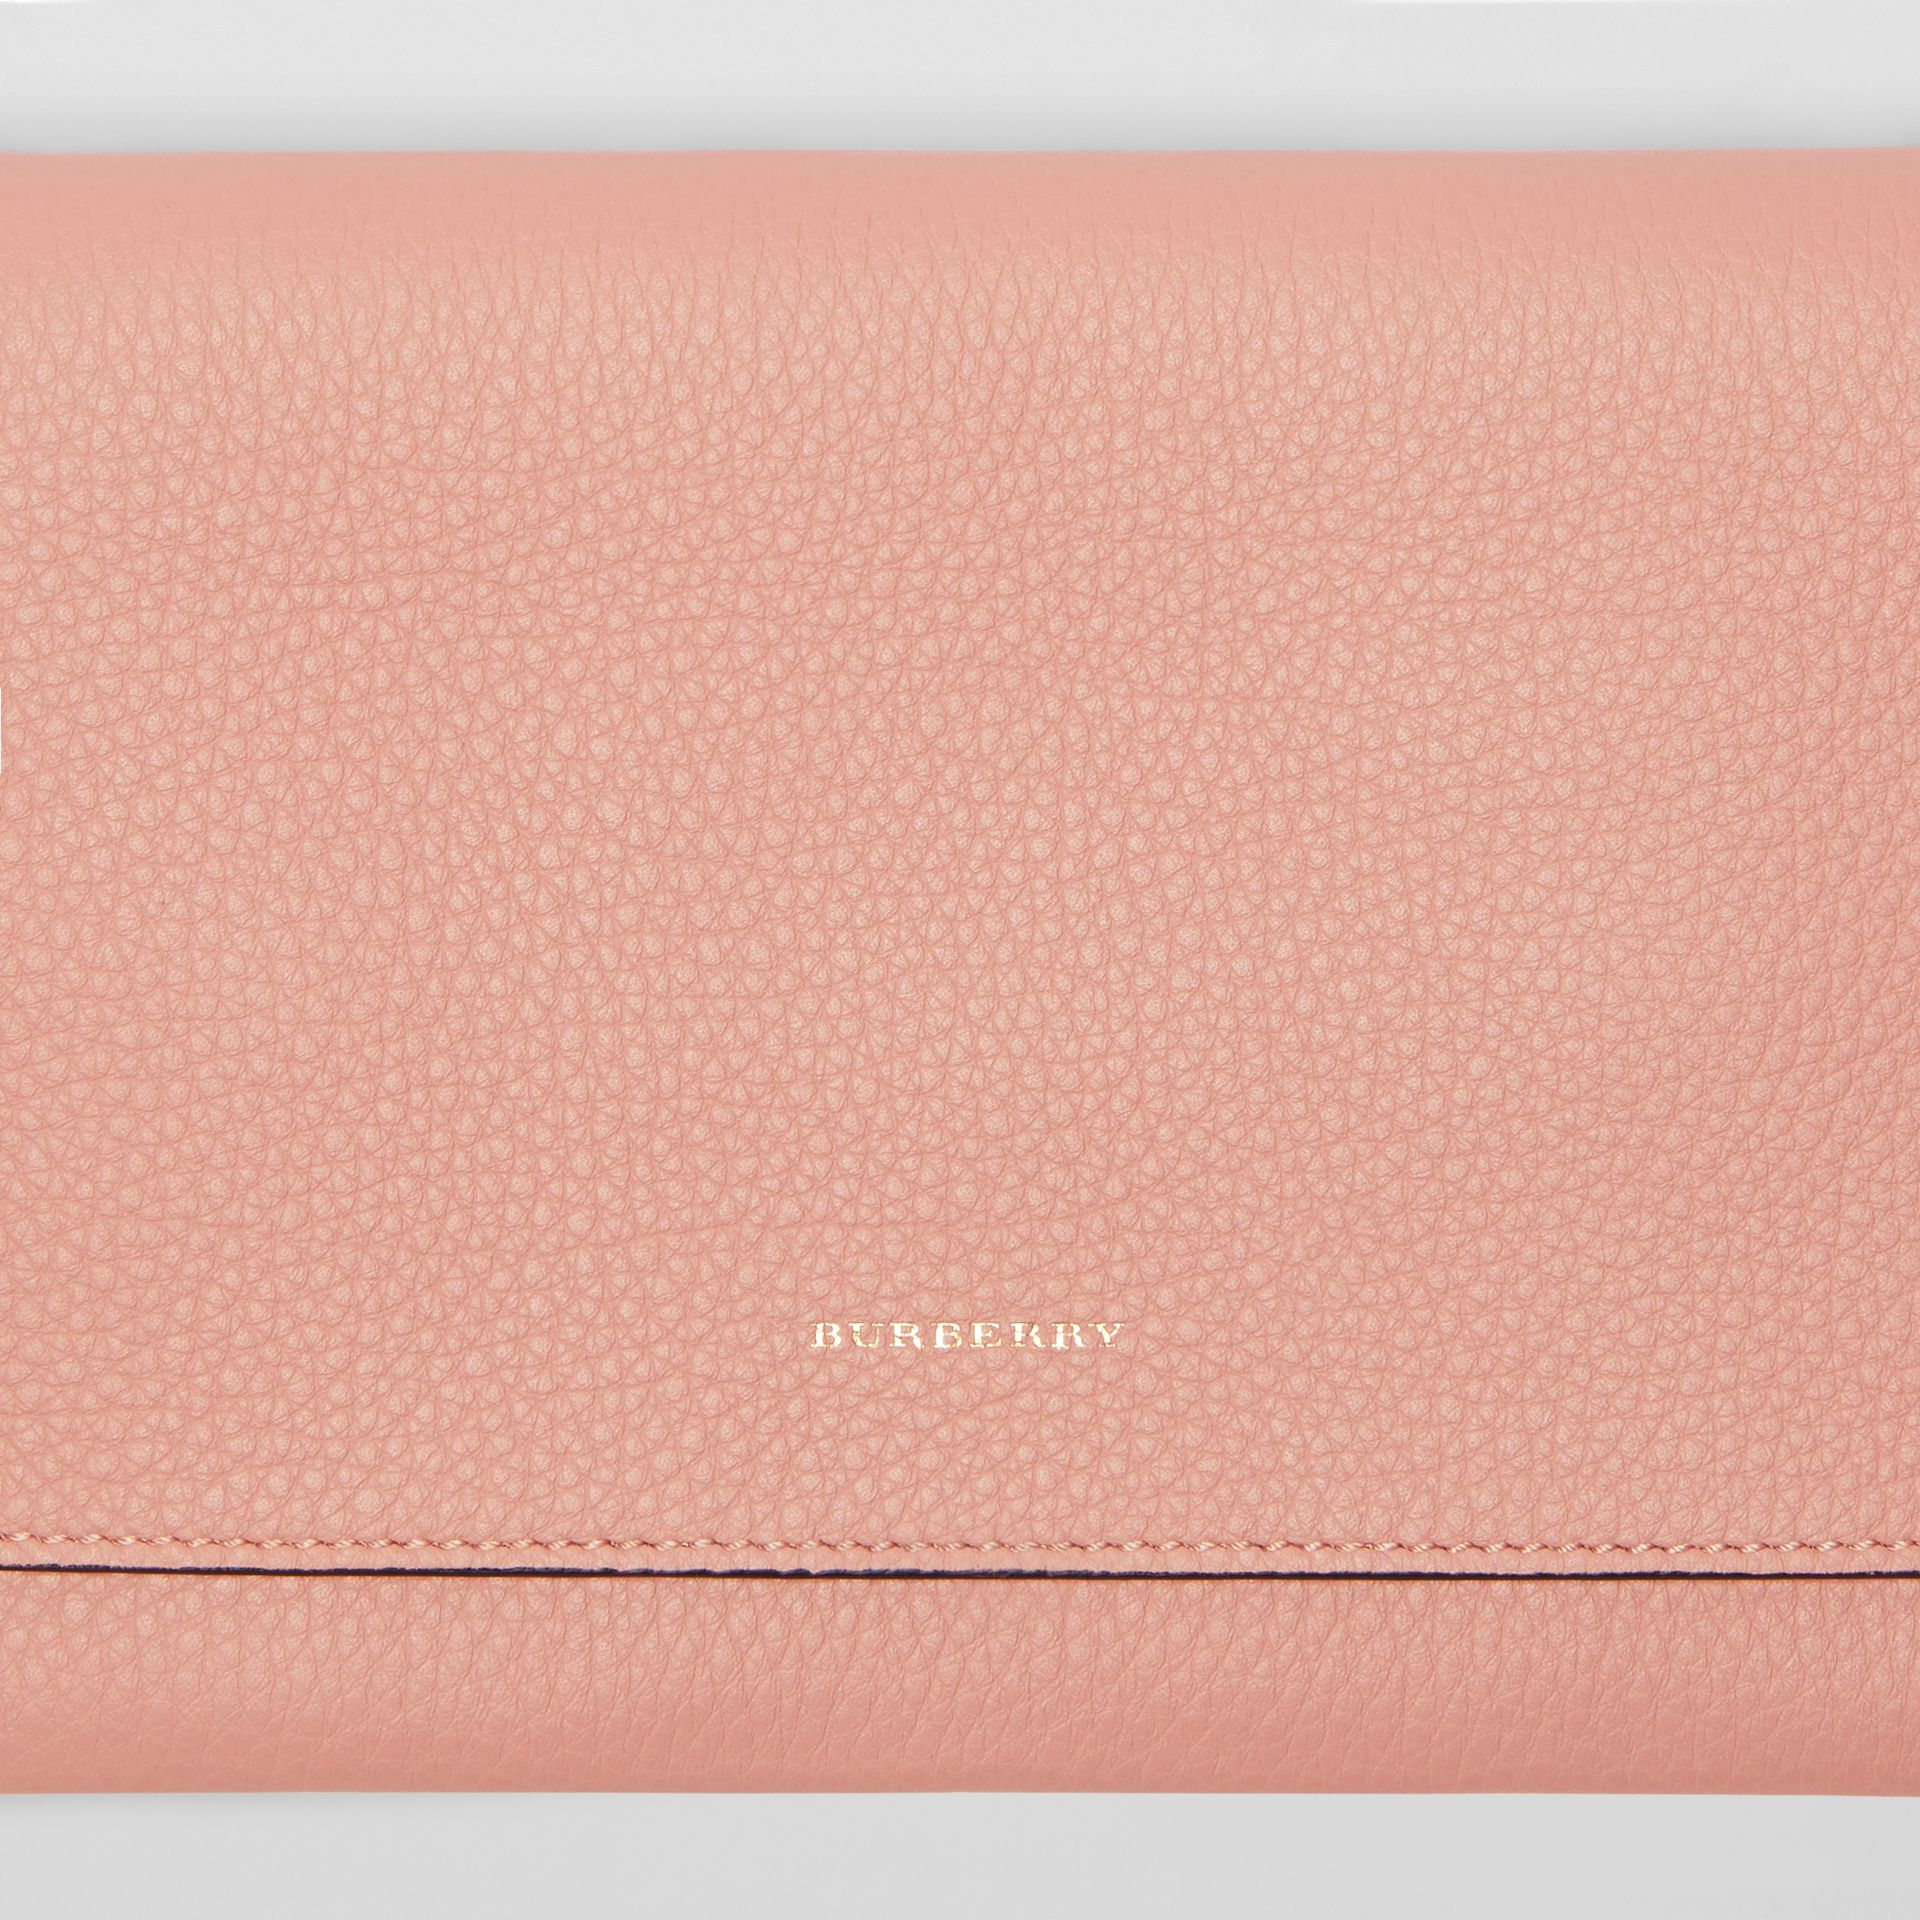 Two-tone Leather Wristlet Clutch in Ash Rose - Women | Burberry United Kingdom - gallery image 1